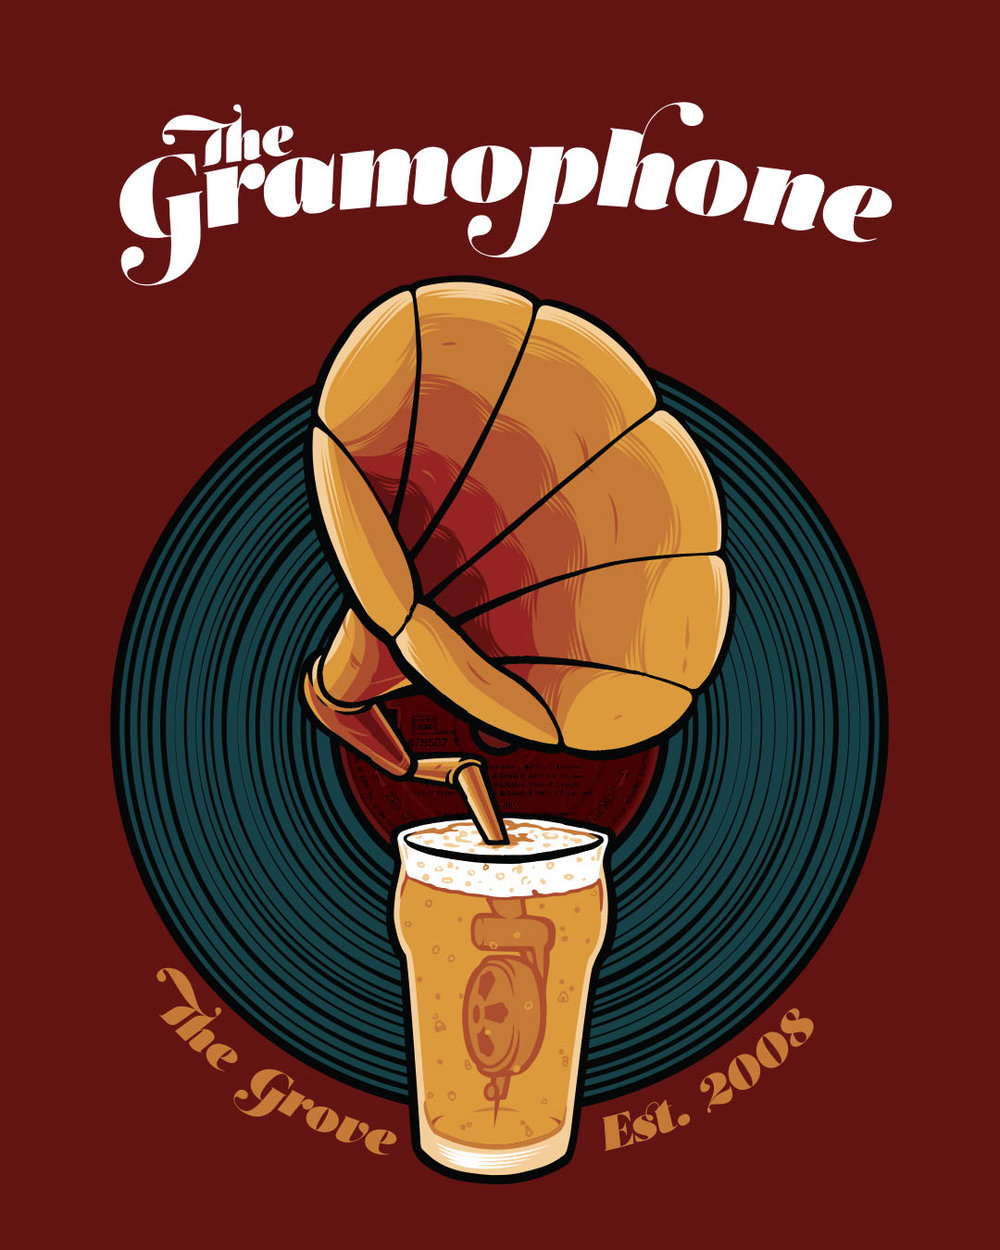 Gramophone-FINAL.jpg